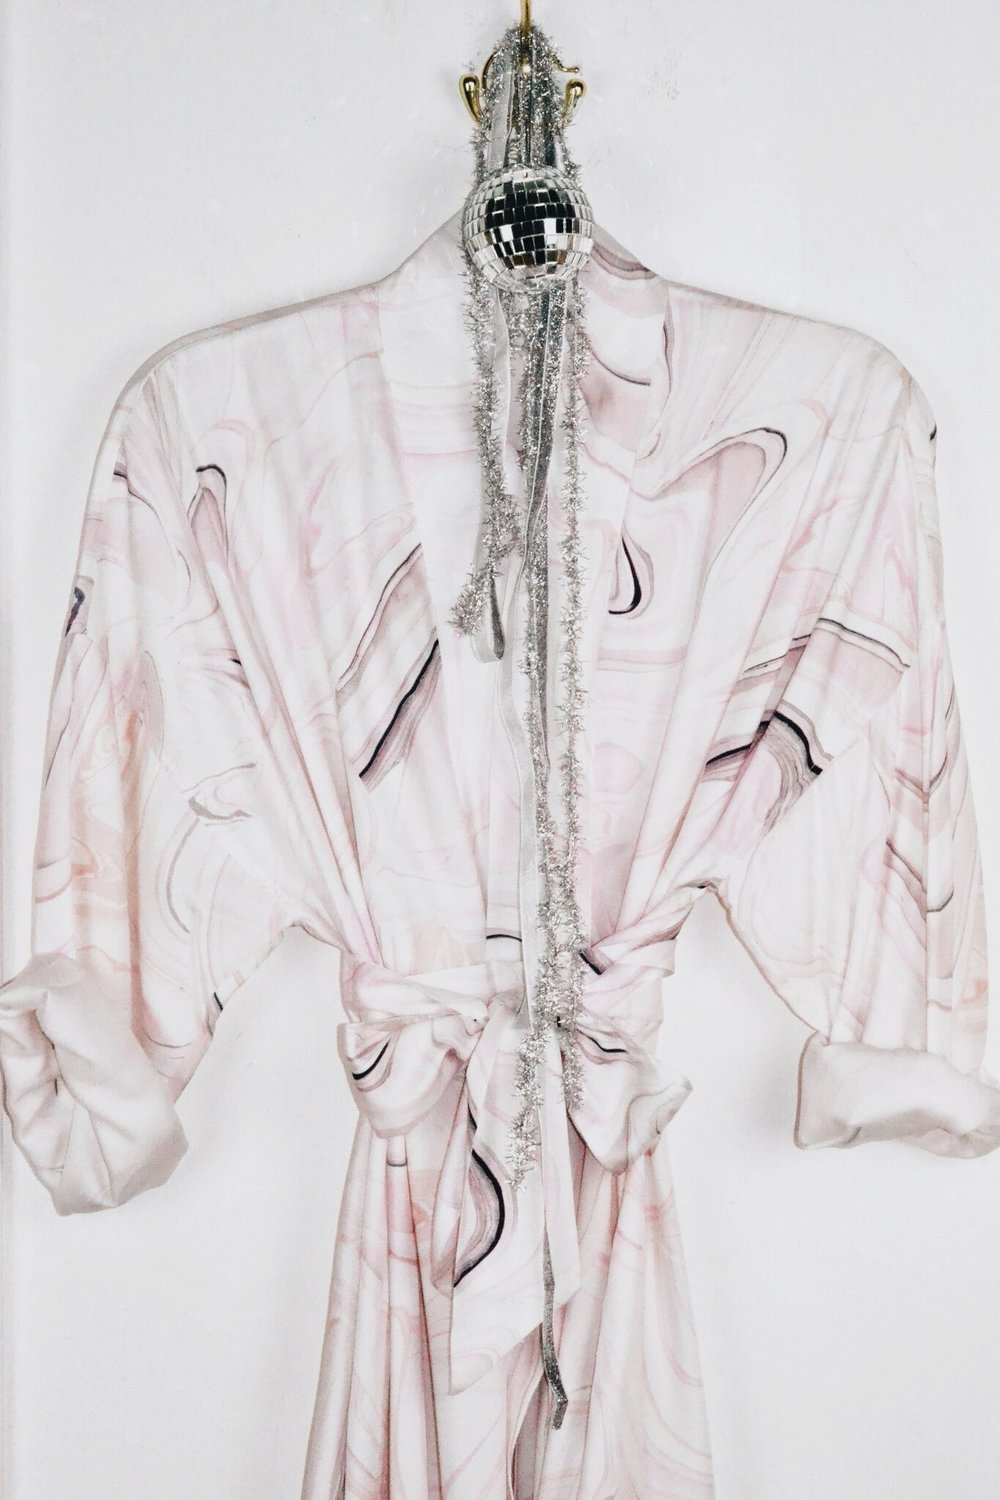 sunday forever uLTRA LIMITED EDITION FANCY MARBLE KIMONO - It wouldn't be a holiday without a Sunday Forever Kimono. Yes, we're biased (we live in them) but there's a reason why these little babies have a cult following. You can read about our Fall 18 design process in our piece, Sunday Forever Fall 2018 Collection: From the Sheets to the Streets. And, if these little magical garments weren't all that already, you can now get them...CUSTOMIZED. This isn't your mother's housecoat, obviously.$200